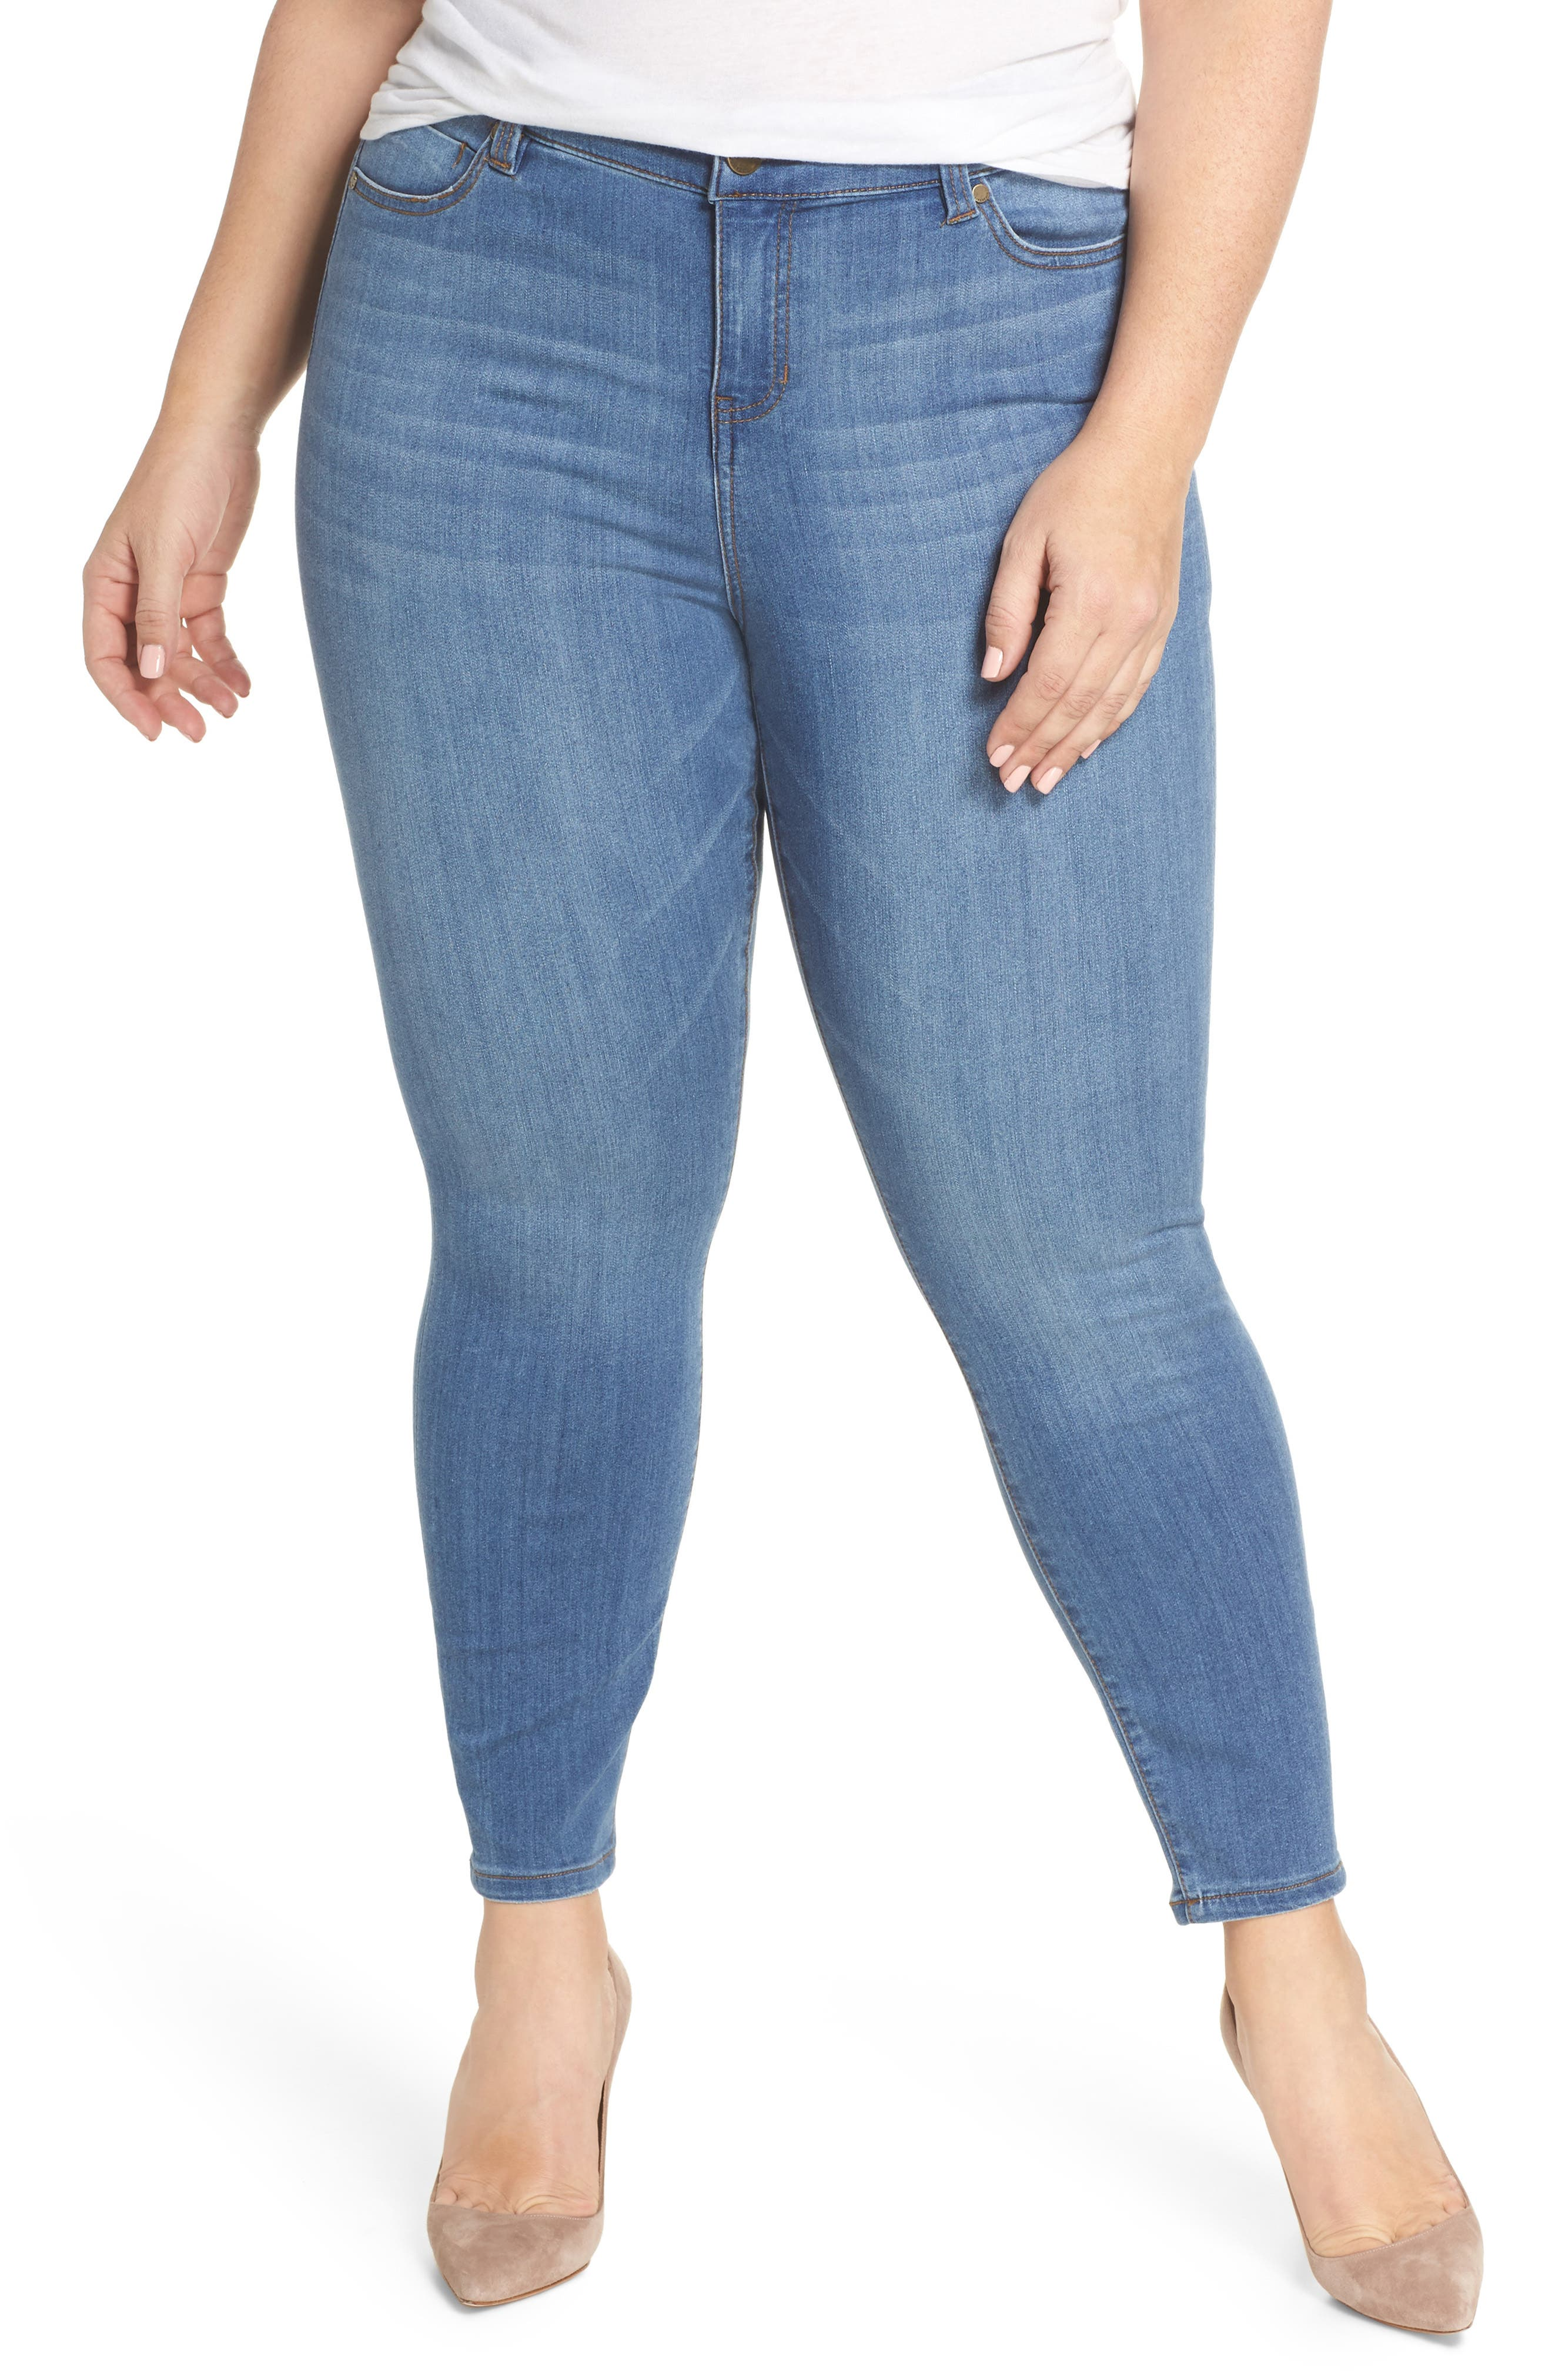 Penny Ankle Jeans,                             Main thumbnail 1, color,                             404